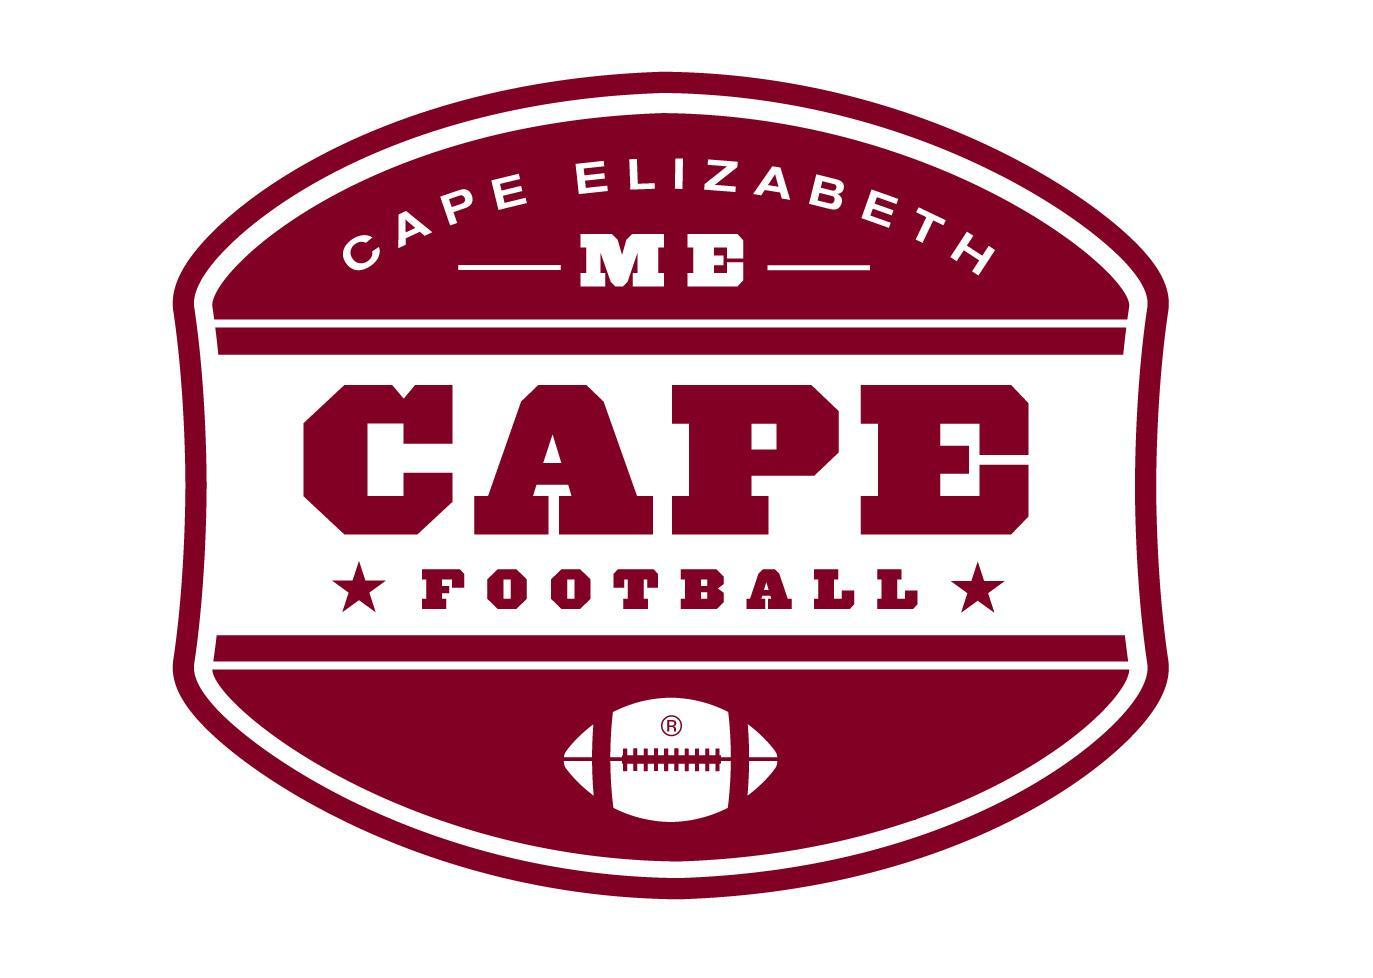 Cape Elizabeth Youth Football